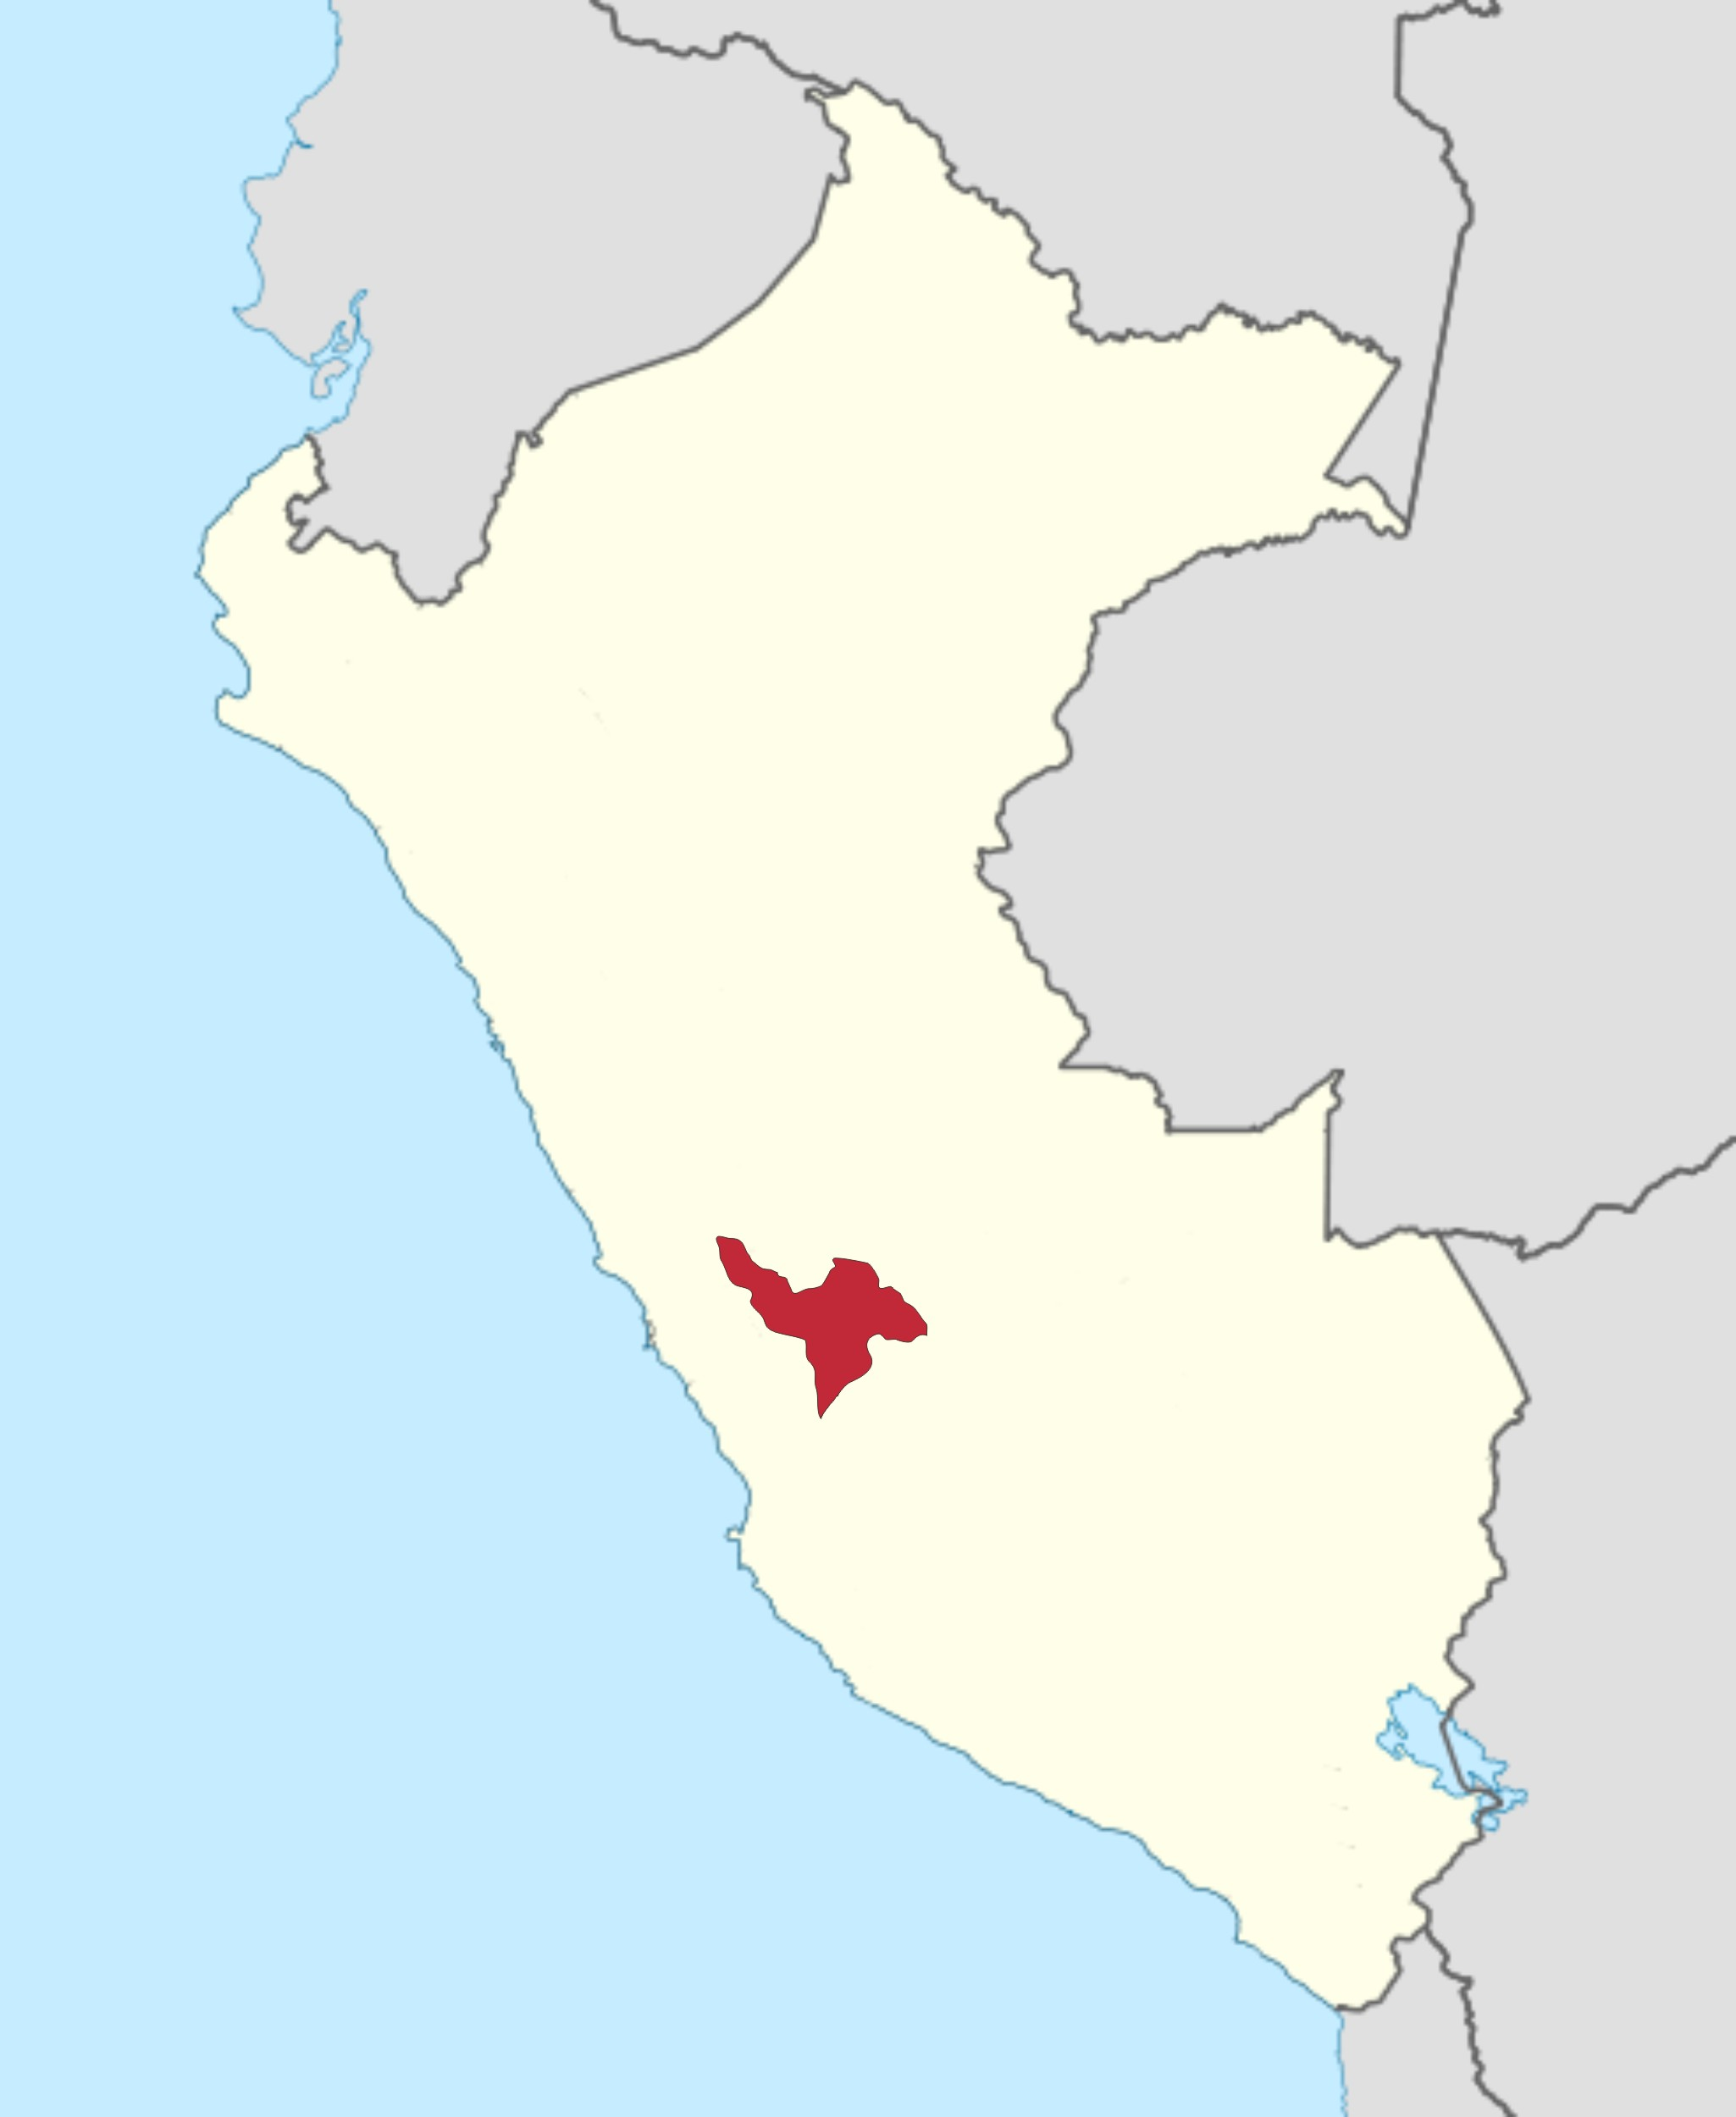 Huancayo Peru Map.File Roman Catholic Diocese Of Huancayo In Peru Jpg Wikimedia Commons